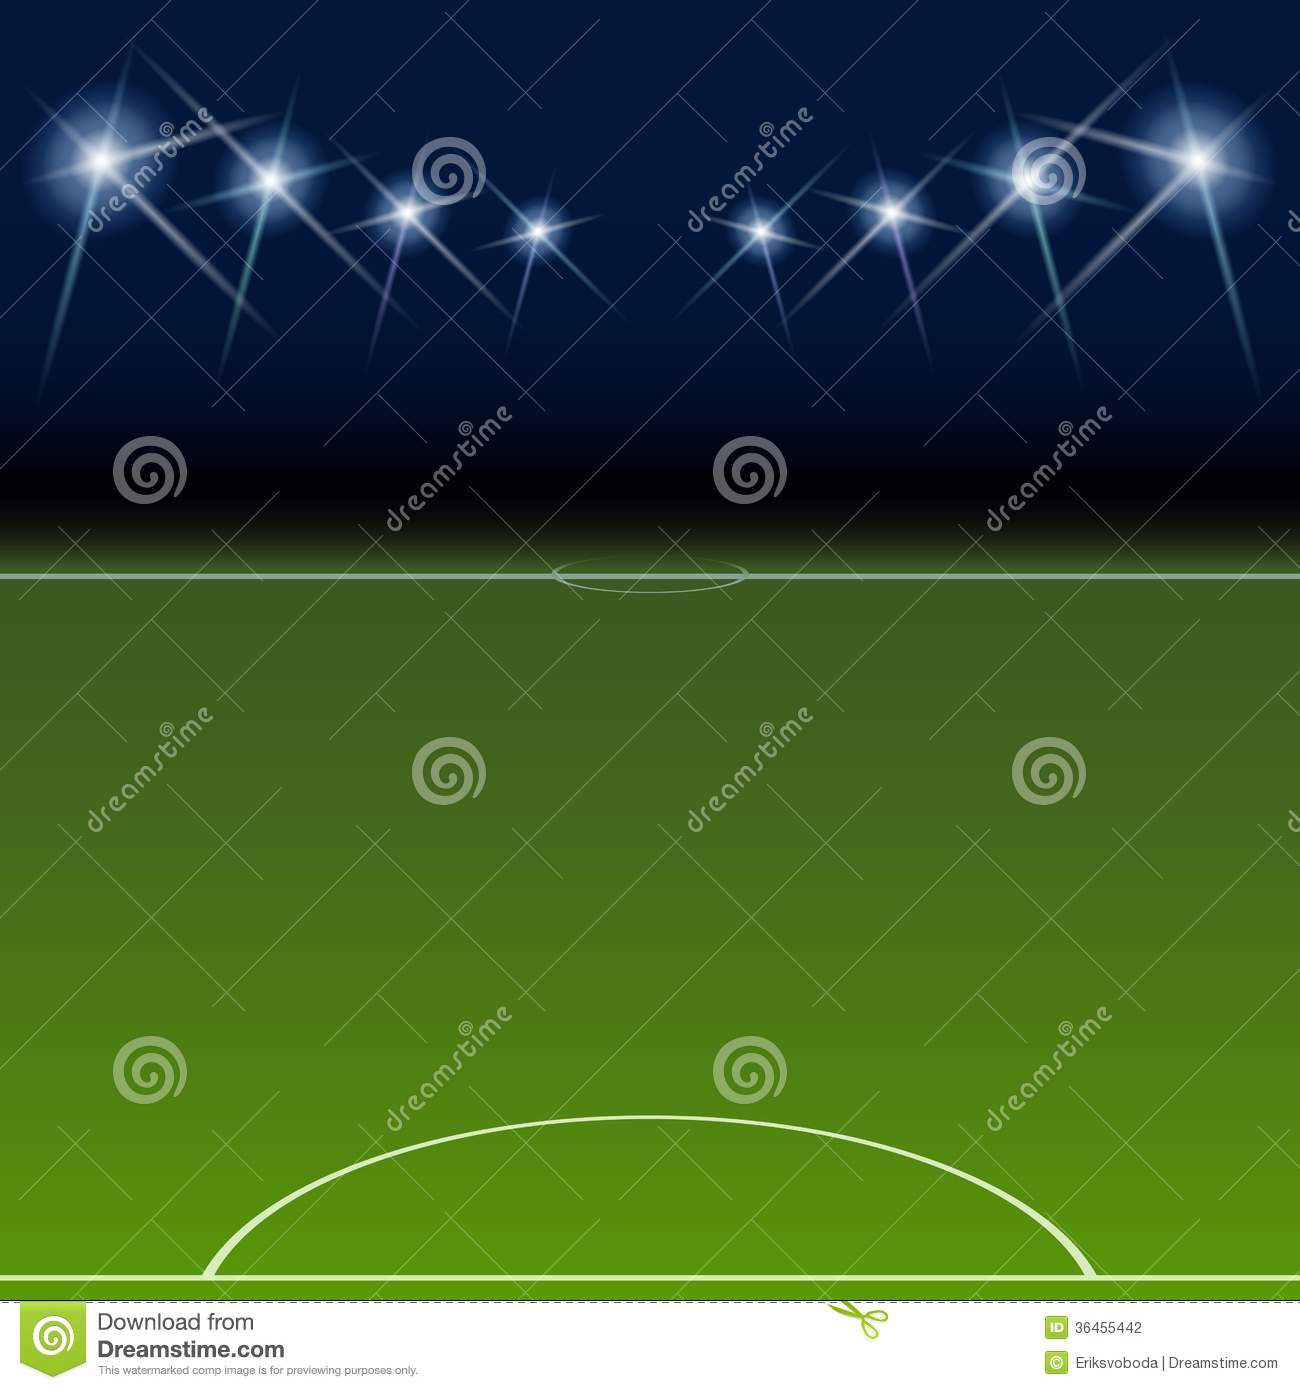 Football Stadium Night Lights: Green Soccer Field, Bright Spotlights, Stock Photography